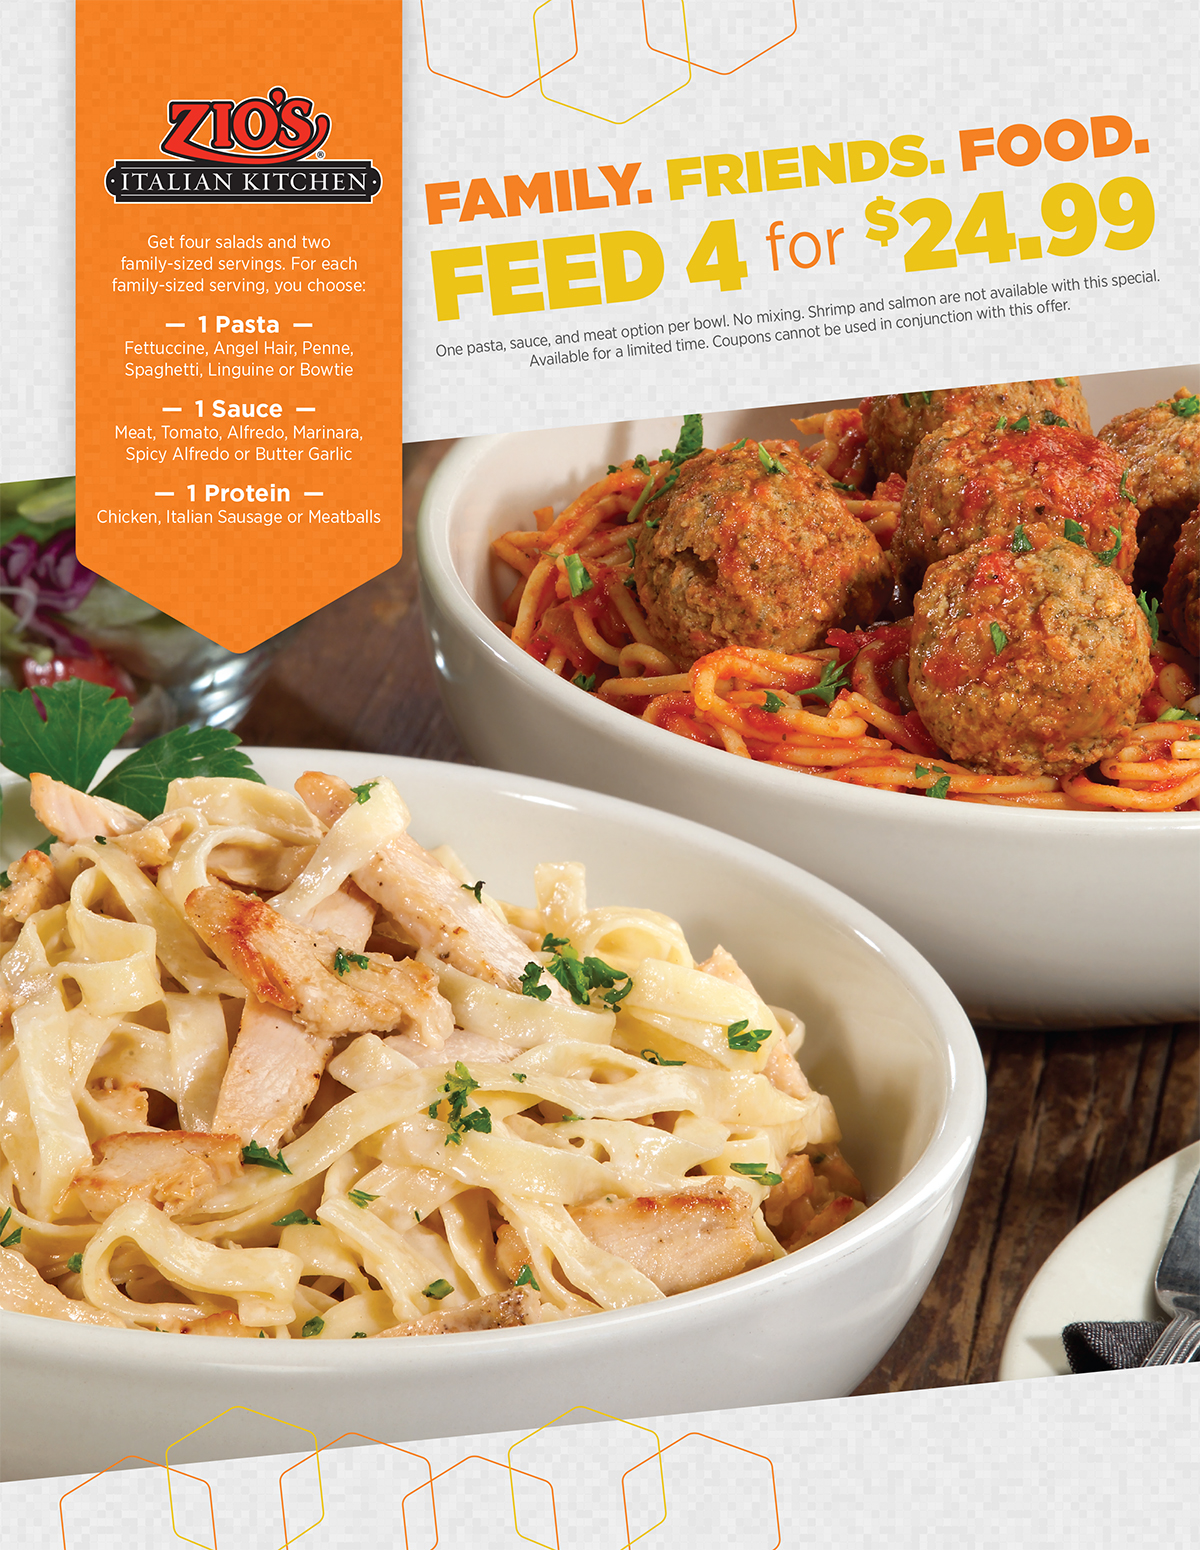 feed 4 for 2499 - Zios Italian Kitchen